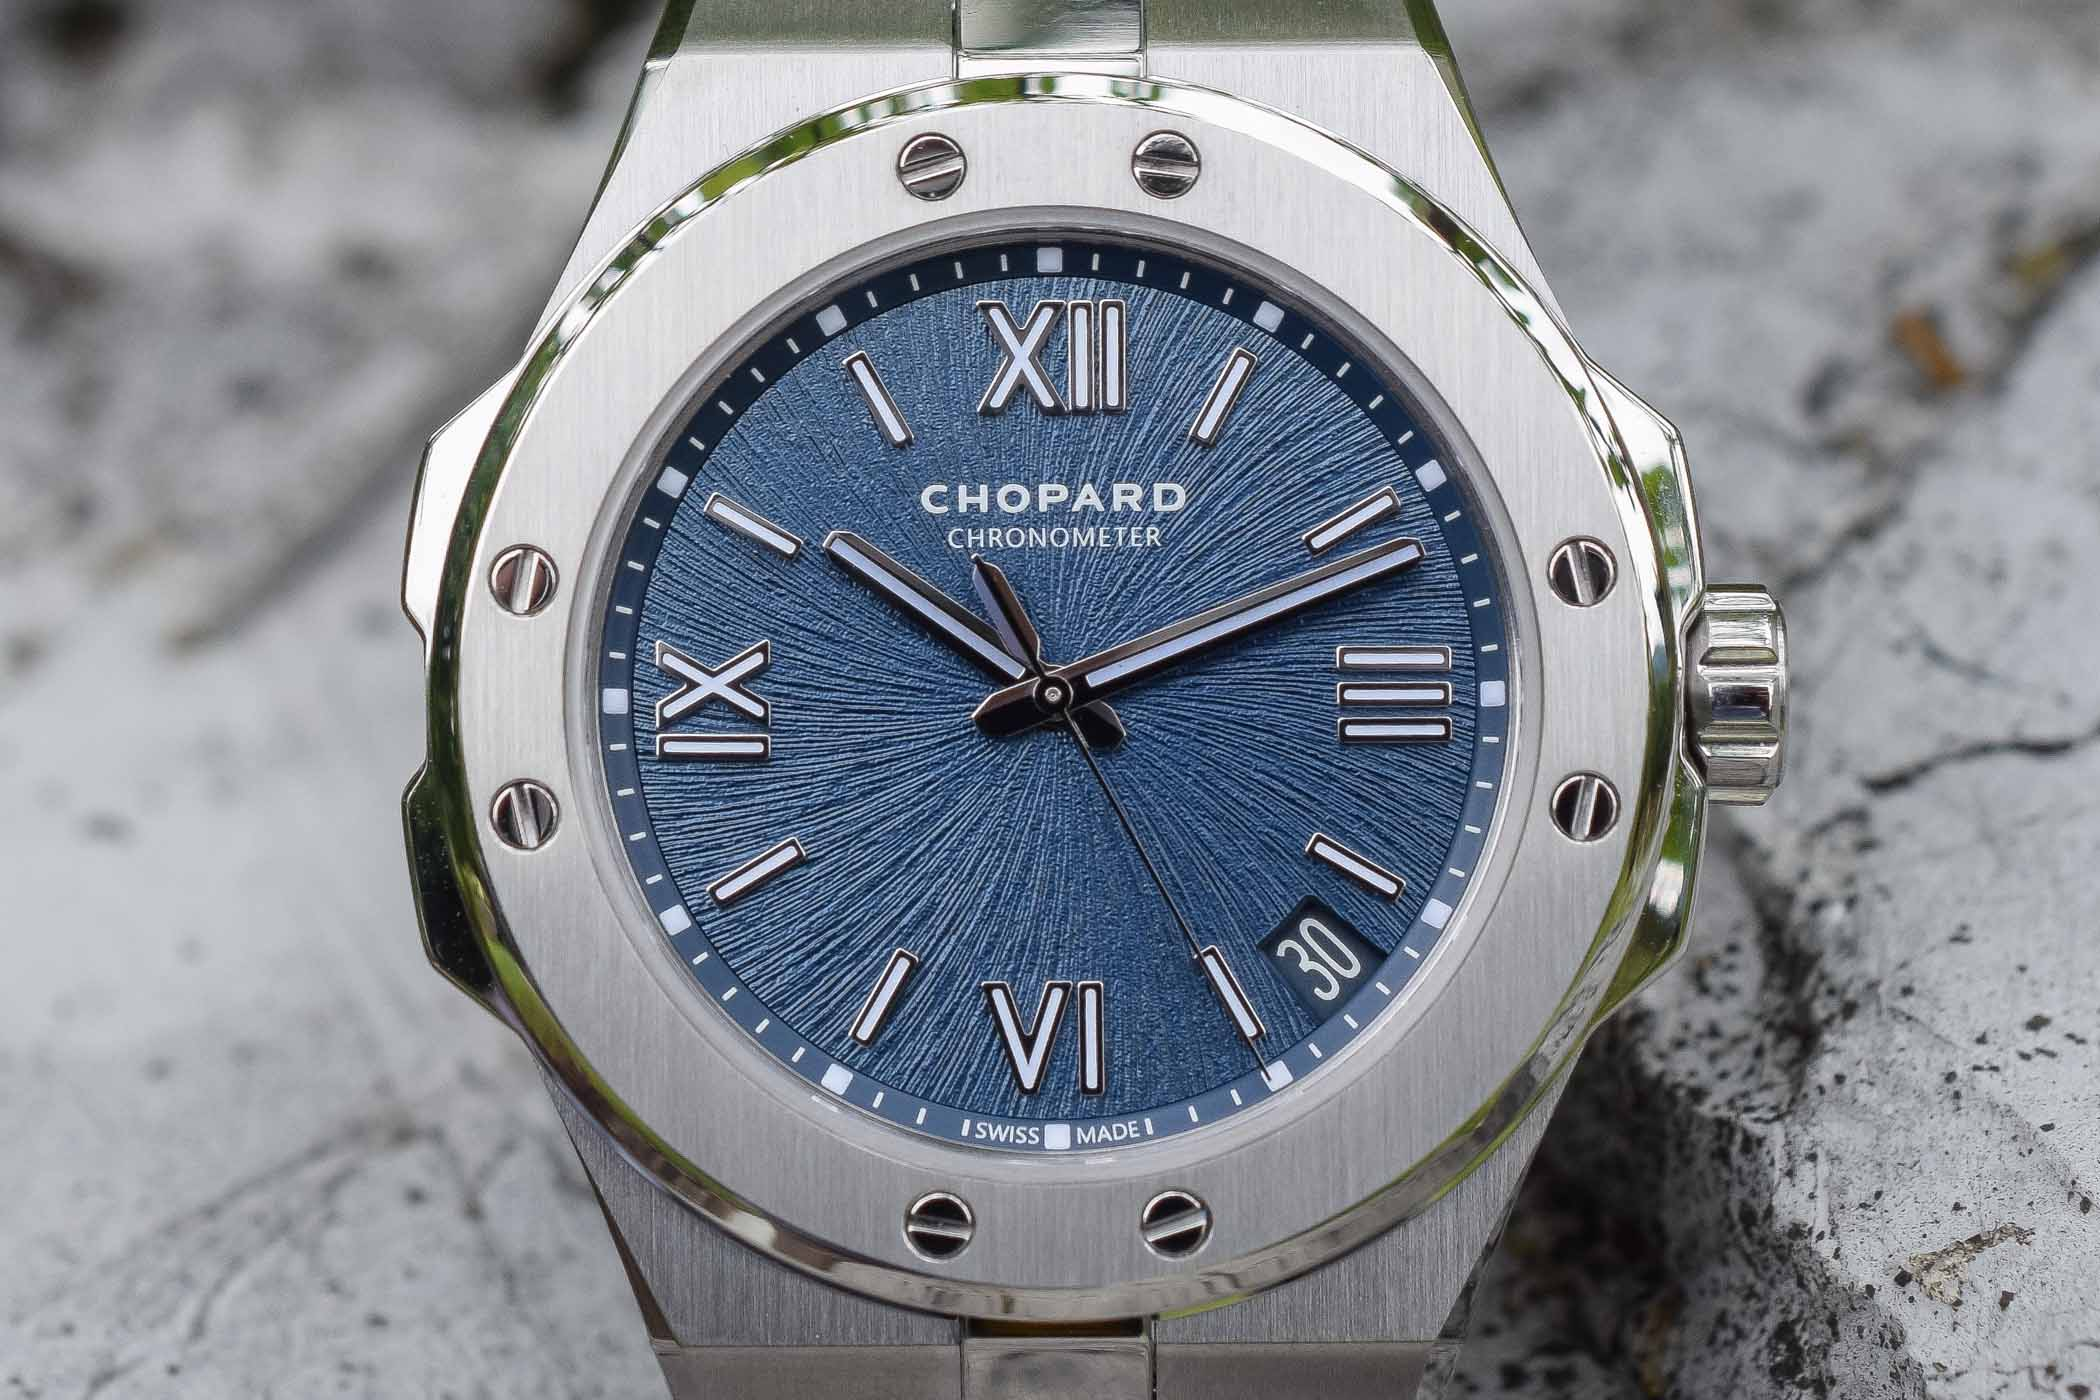 Chopard Alpine Eagle 41mm - Luxury Sports Watch Collection